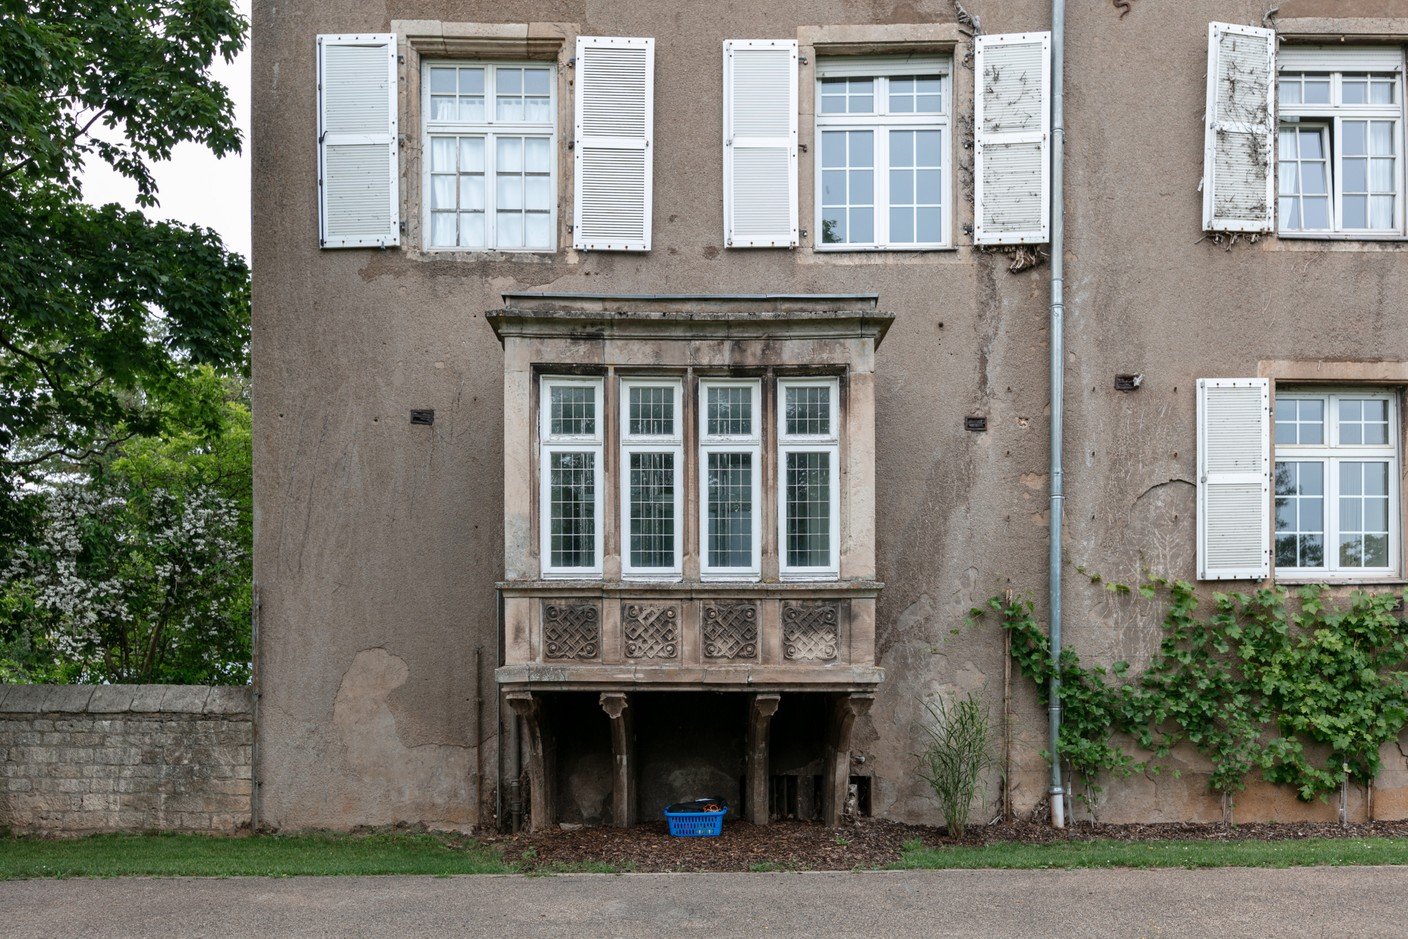 One of the features of the castle that will need upkeep soon, according to Manes Romain Gamba / Maison Moderne